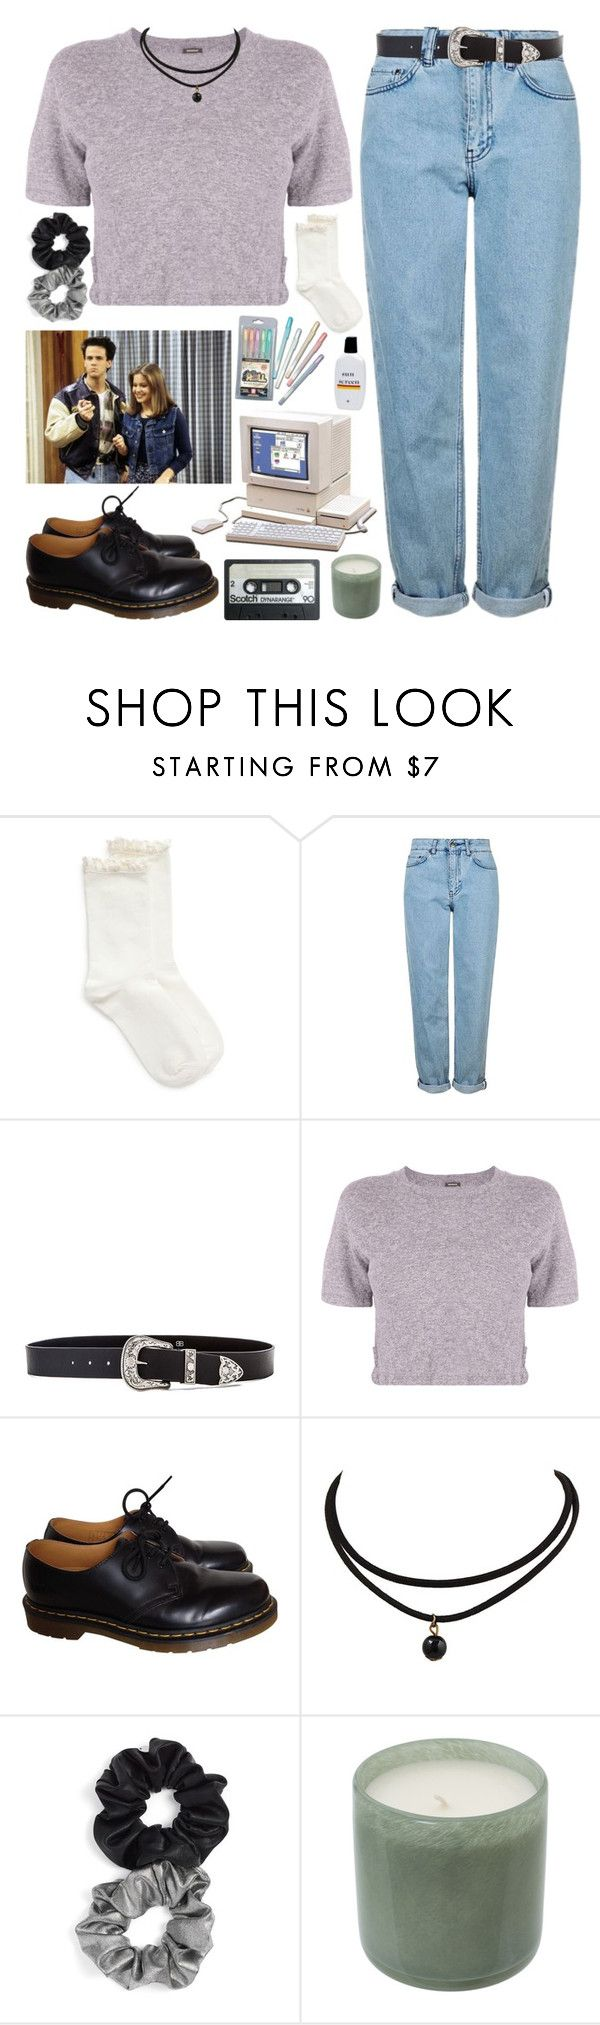 """FULL HOUSE ~ dj tanner"" by gemmonkey ❤ liked on Polyvore featuring Hue, Topshop, New House Textiles, B-Low the Belt, Monrow, Dr. Martens, Berry and LAFCO"